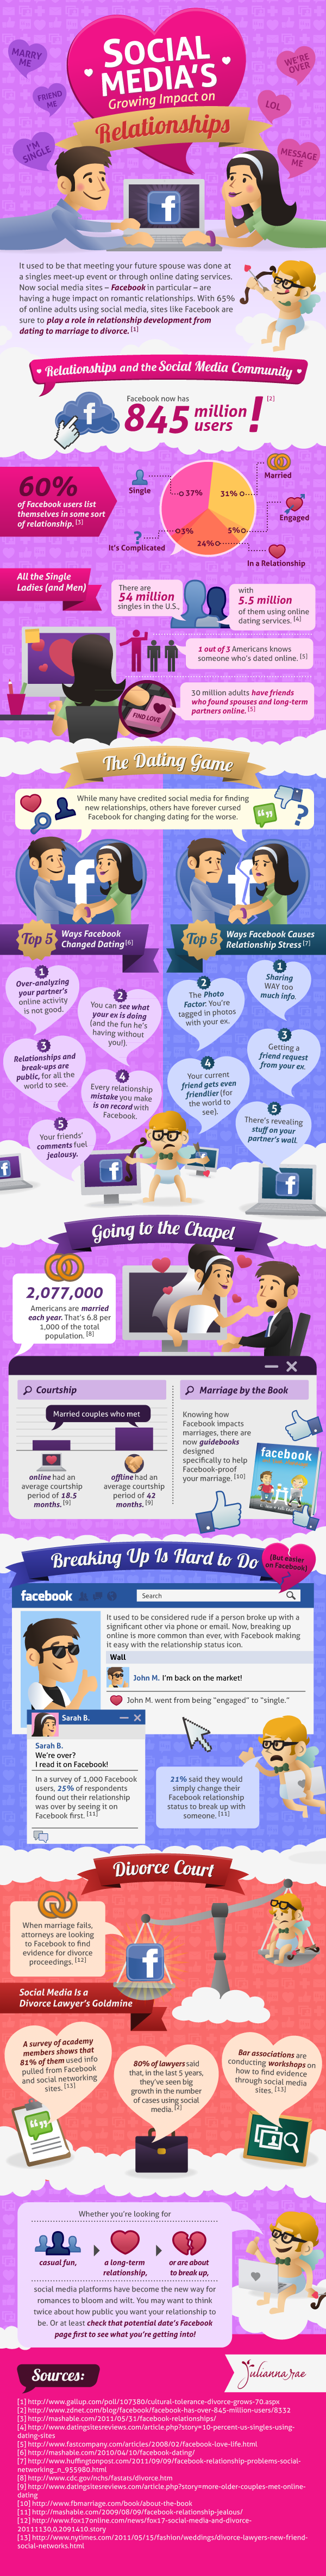 Social Media's Impact On Relationships